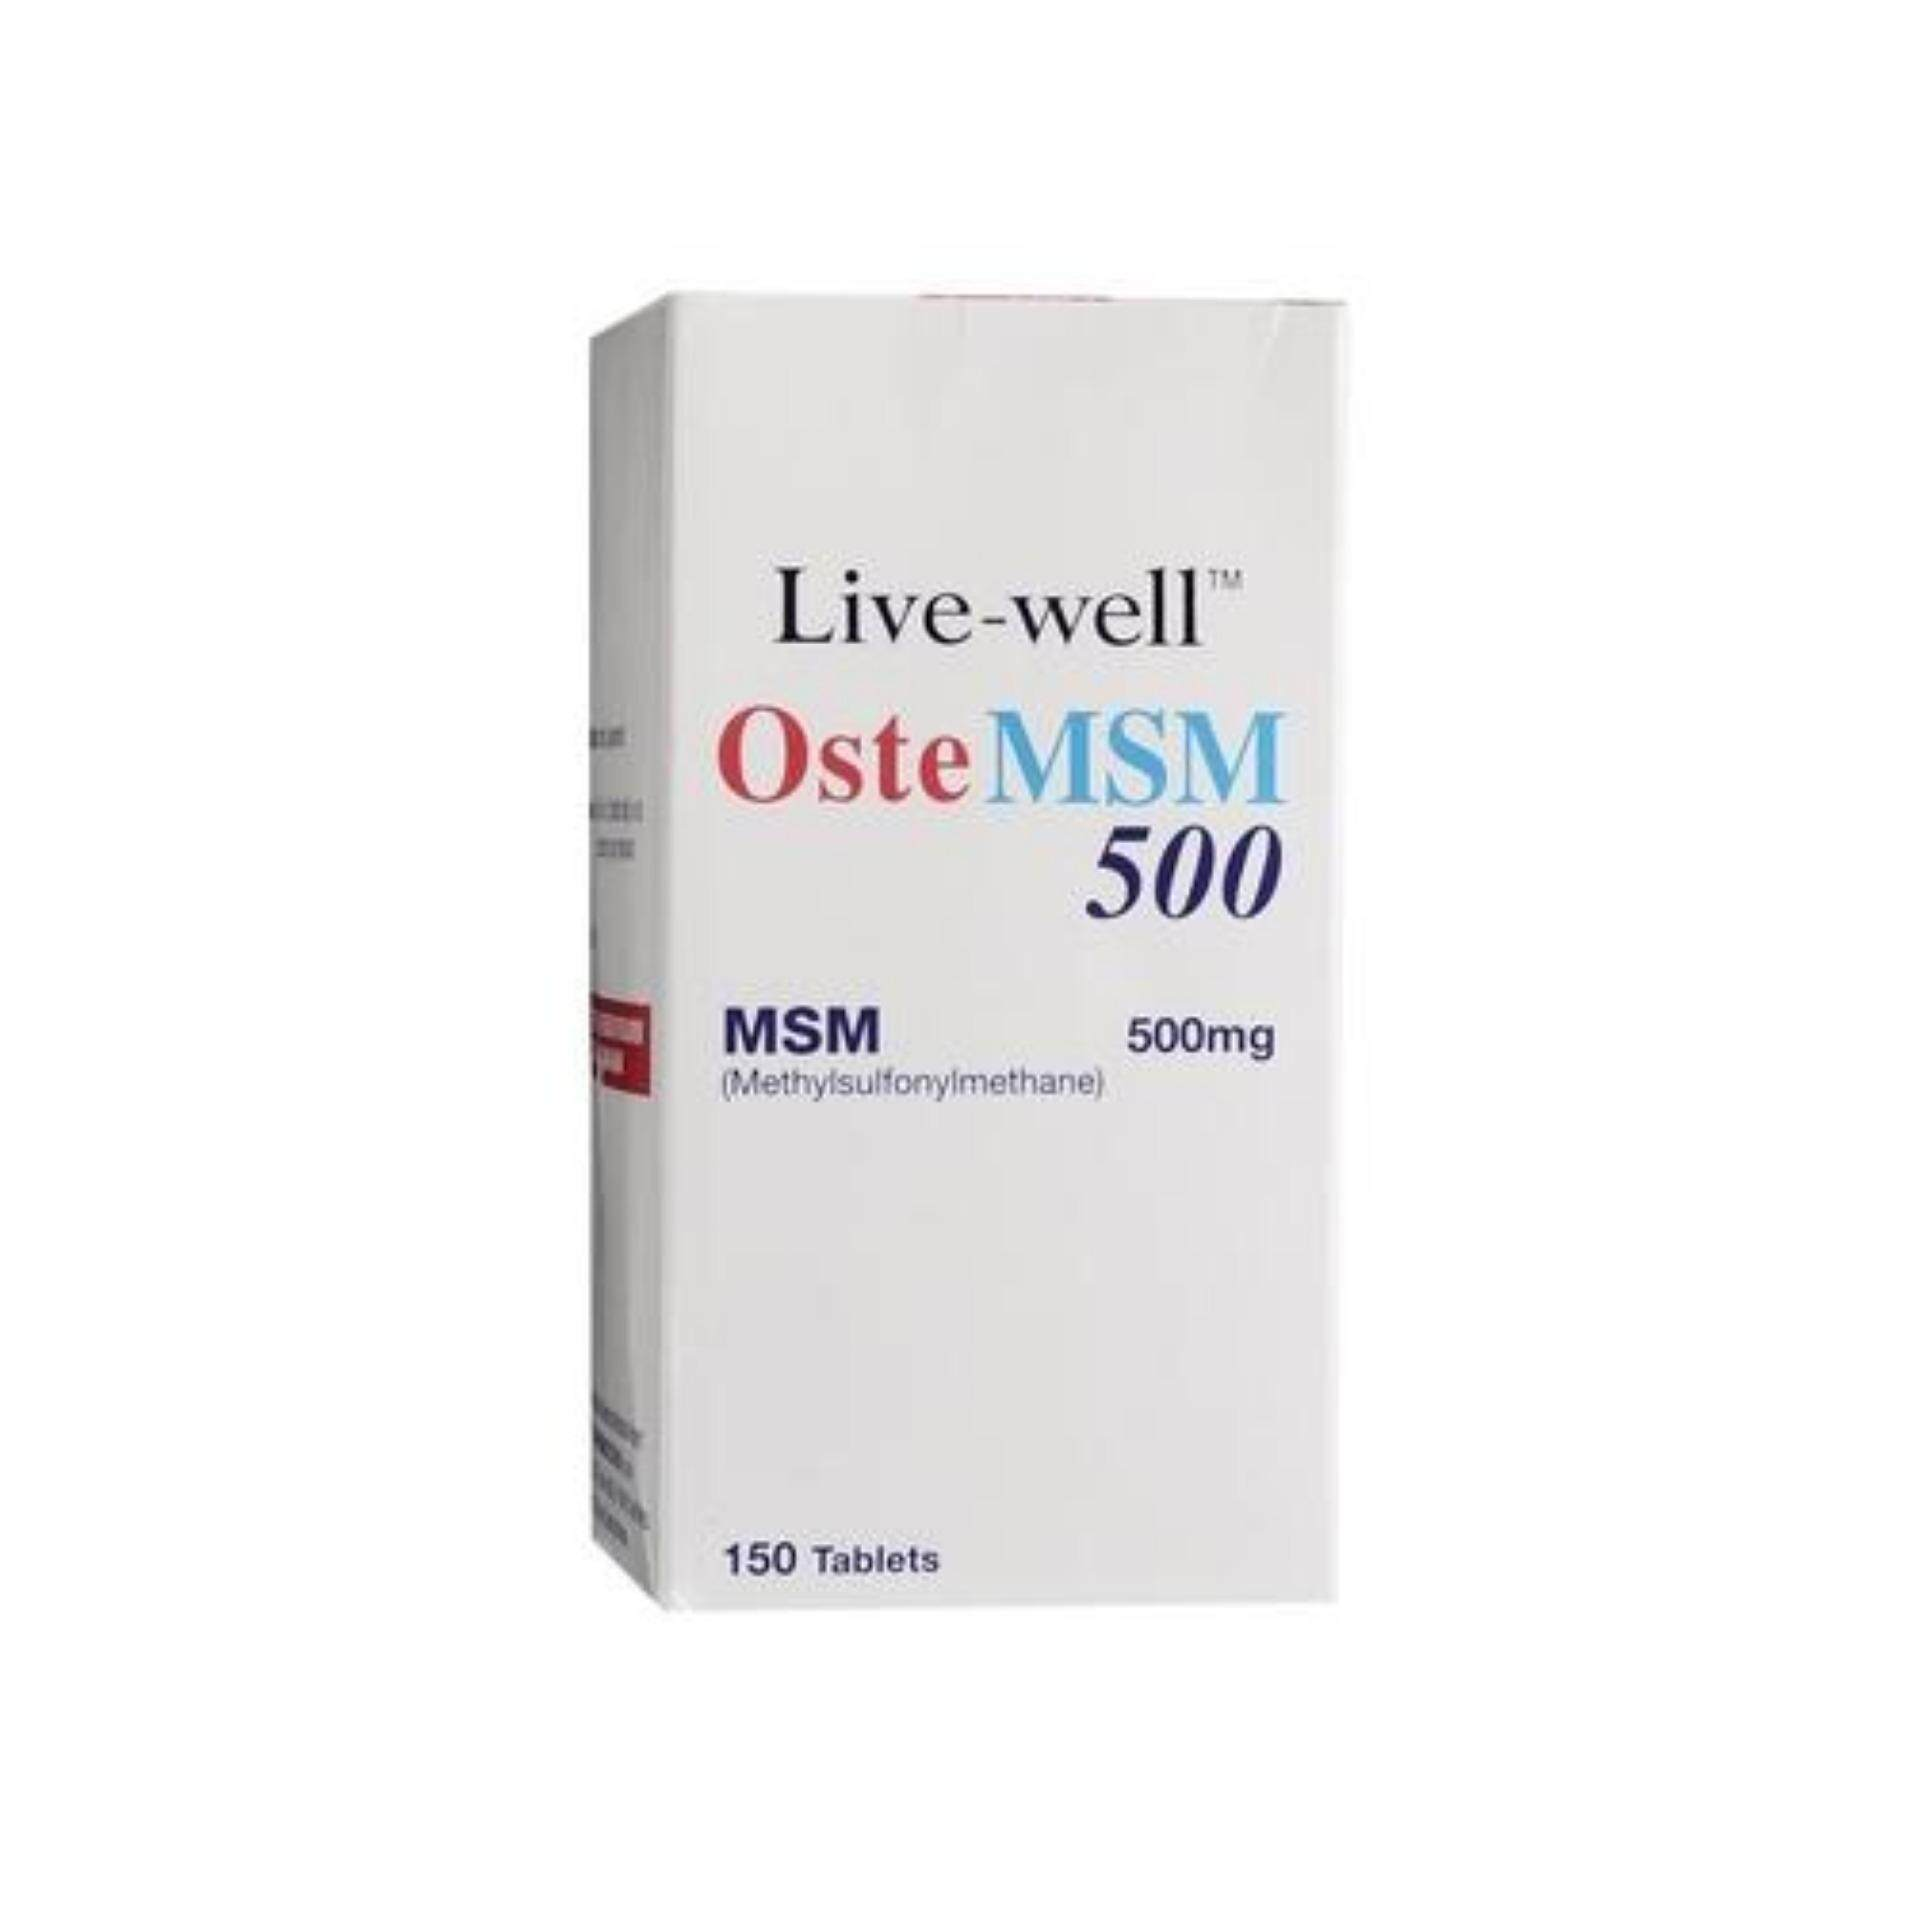 Live Well Oste Msm 500Mg 150'S